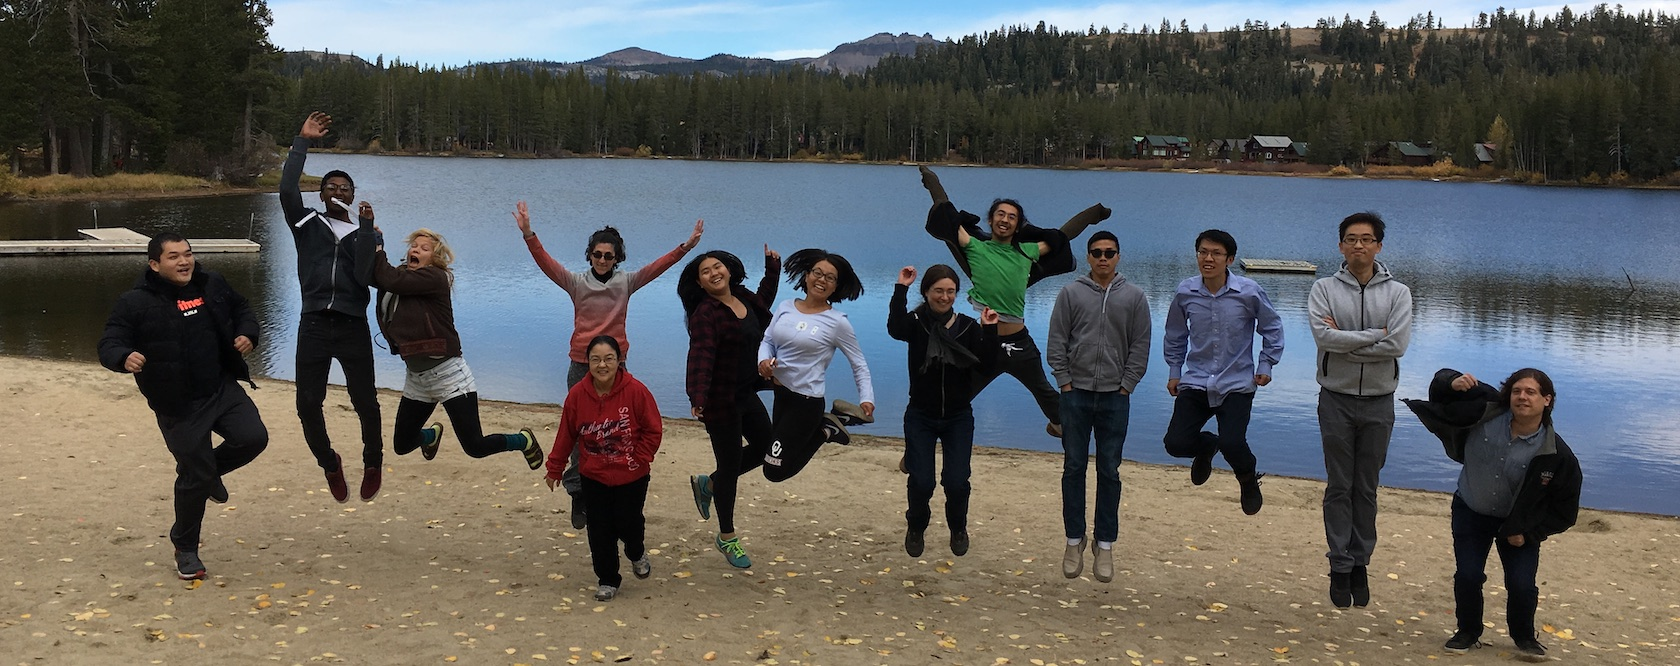 Celebrating our first lab retreat to Lake Tahoe in 2018. Image credit: Sue Rhee